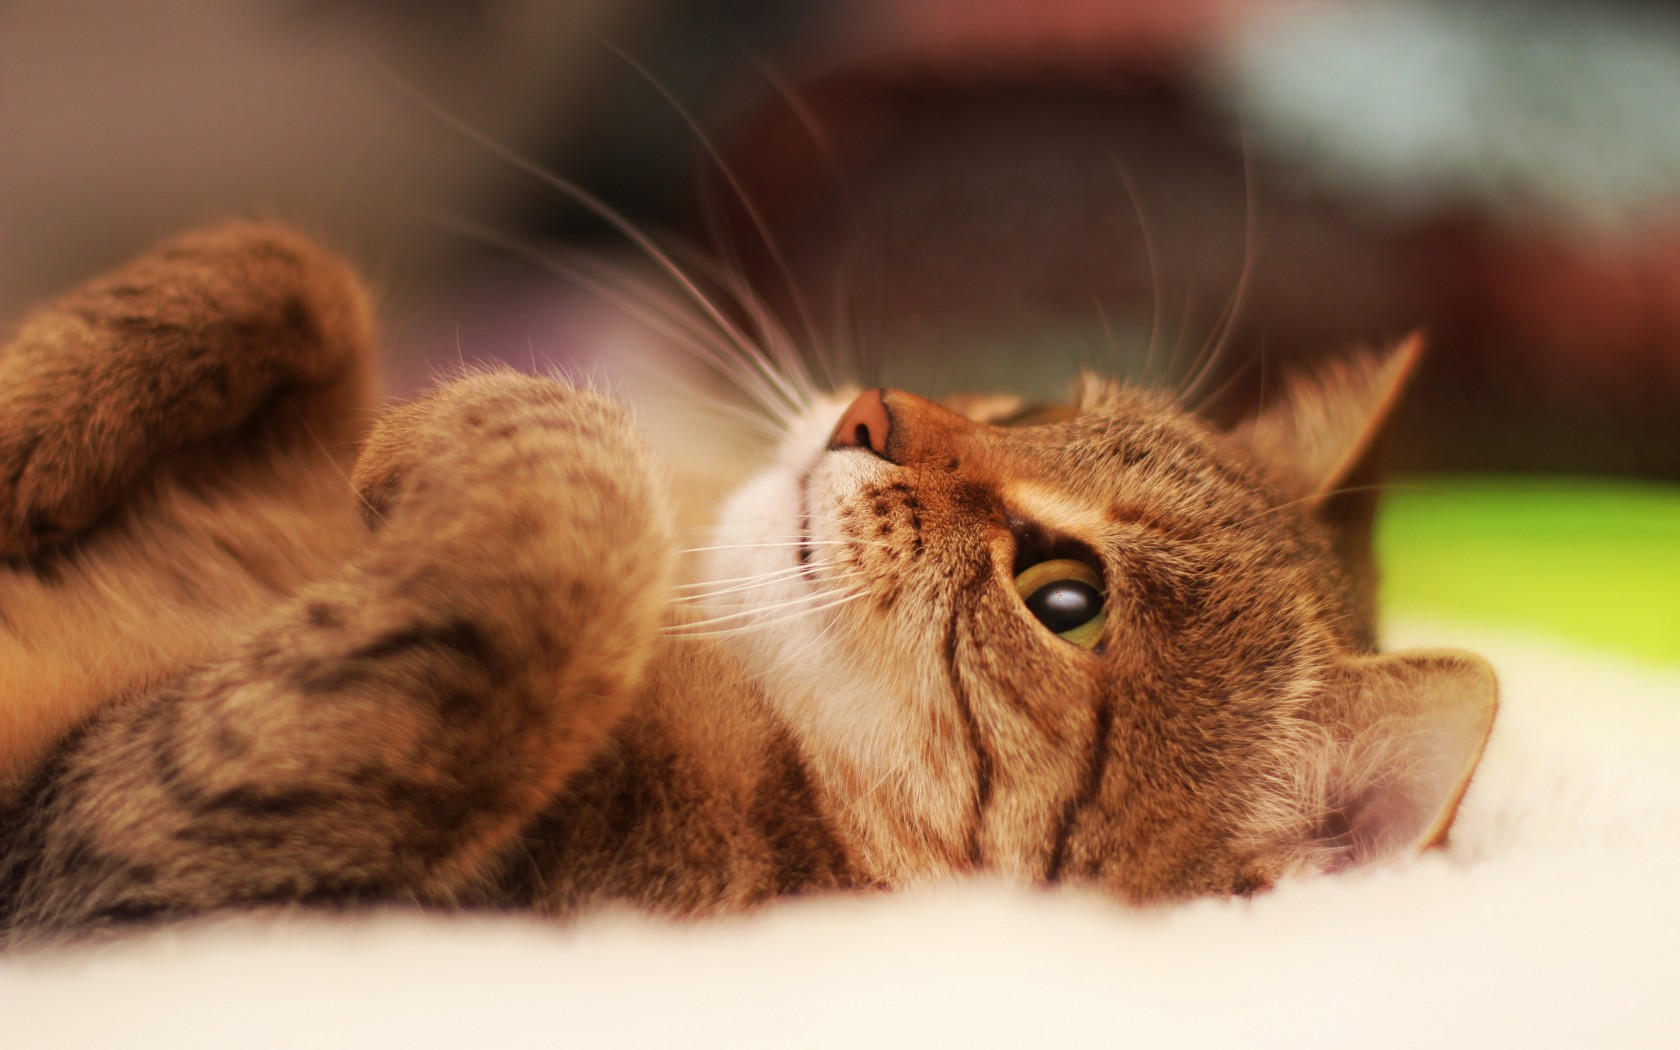 Cat Lying On Back Wallpaper for Desktop 1680x1050